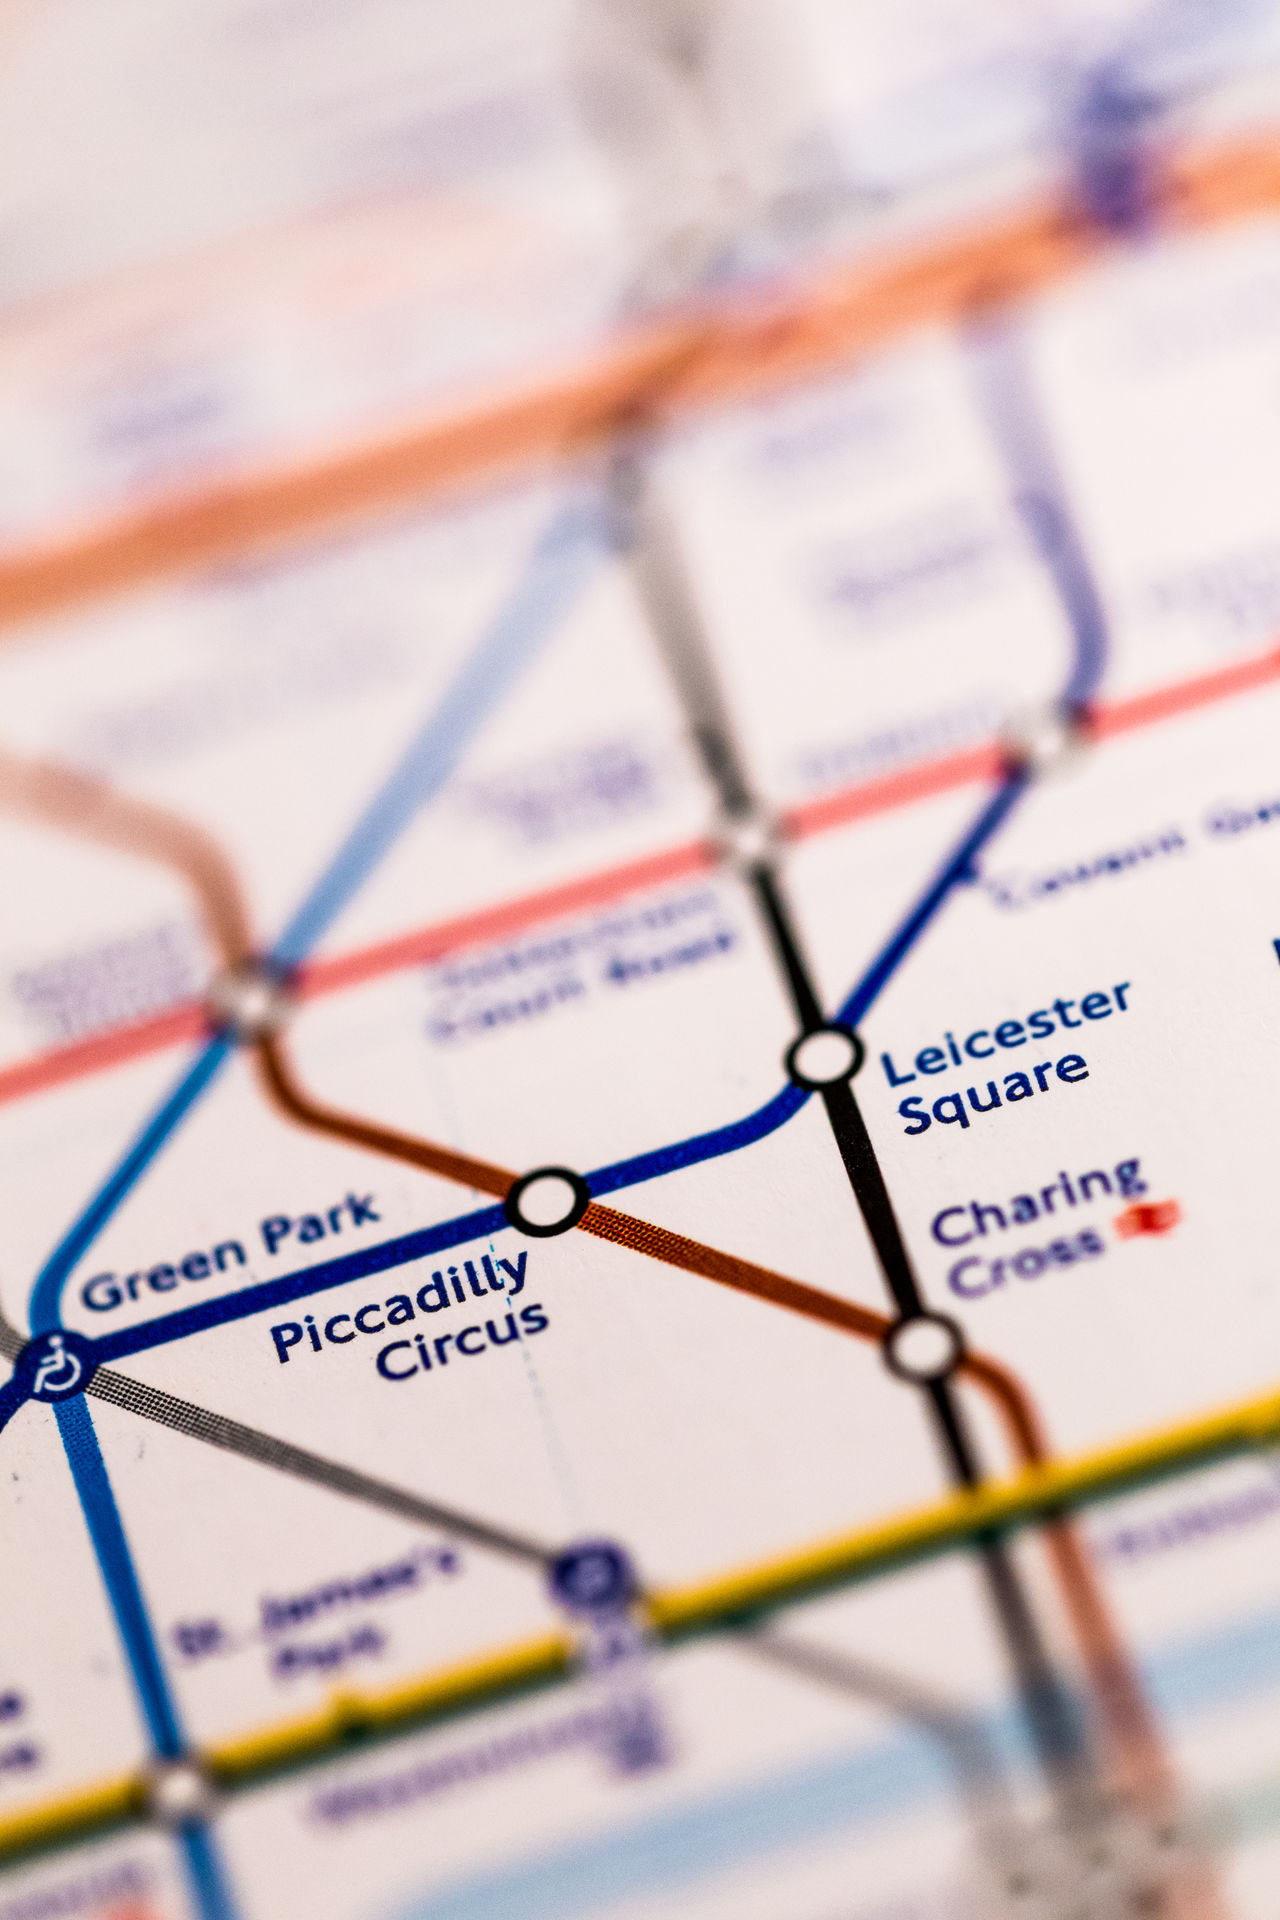 Backgrounds British Culture Central London Close Up Explore Famous Places London London Underground Macro Map No People Picadilly Circus Public Transportation Tourism Train Transport Travel Tube Tube Map Uk Vertical